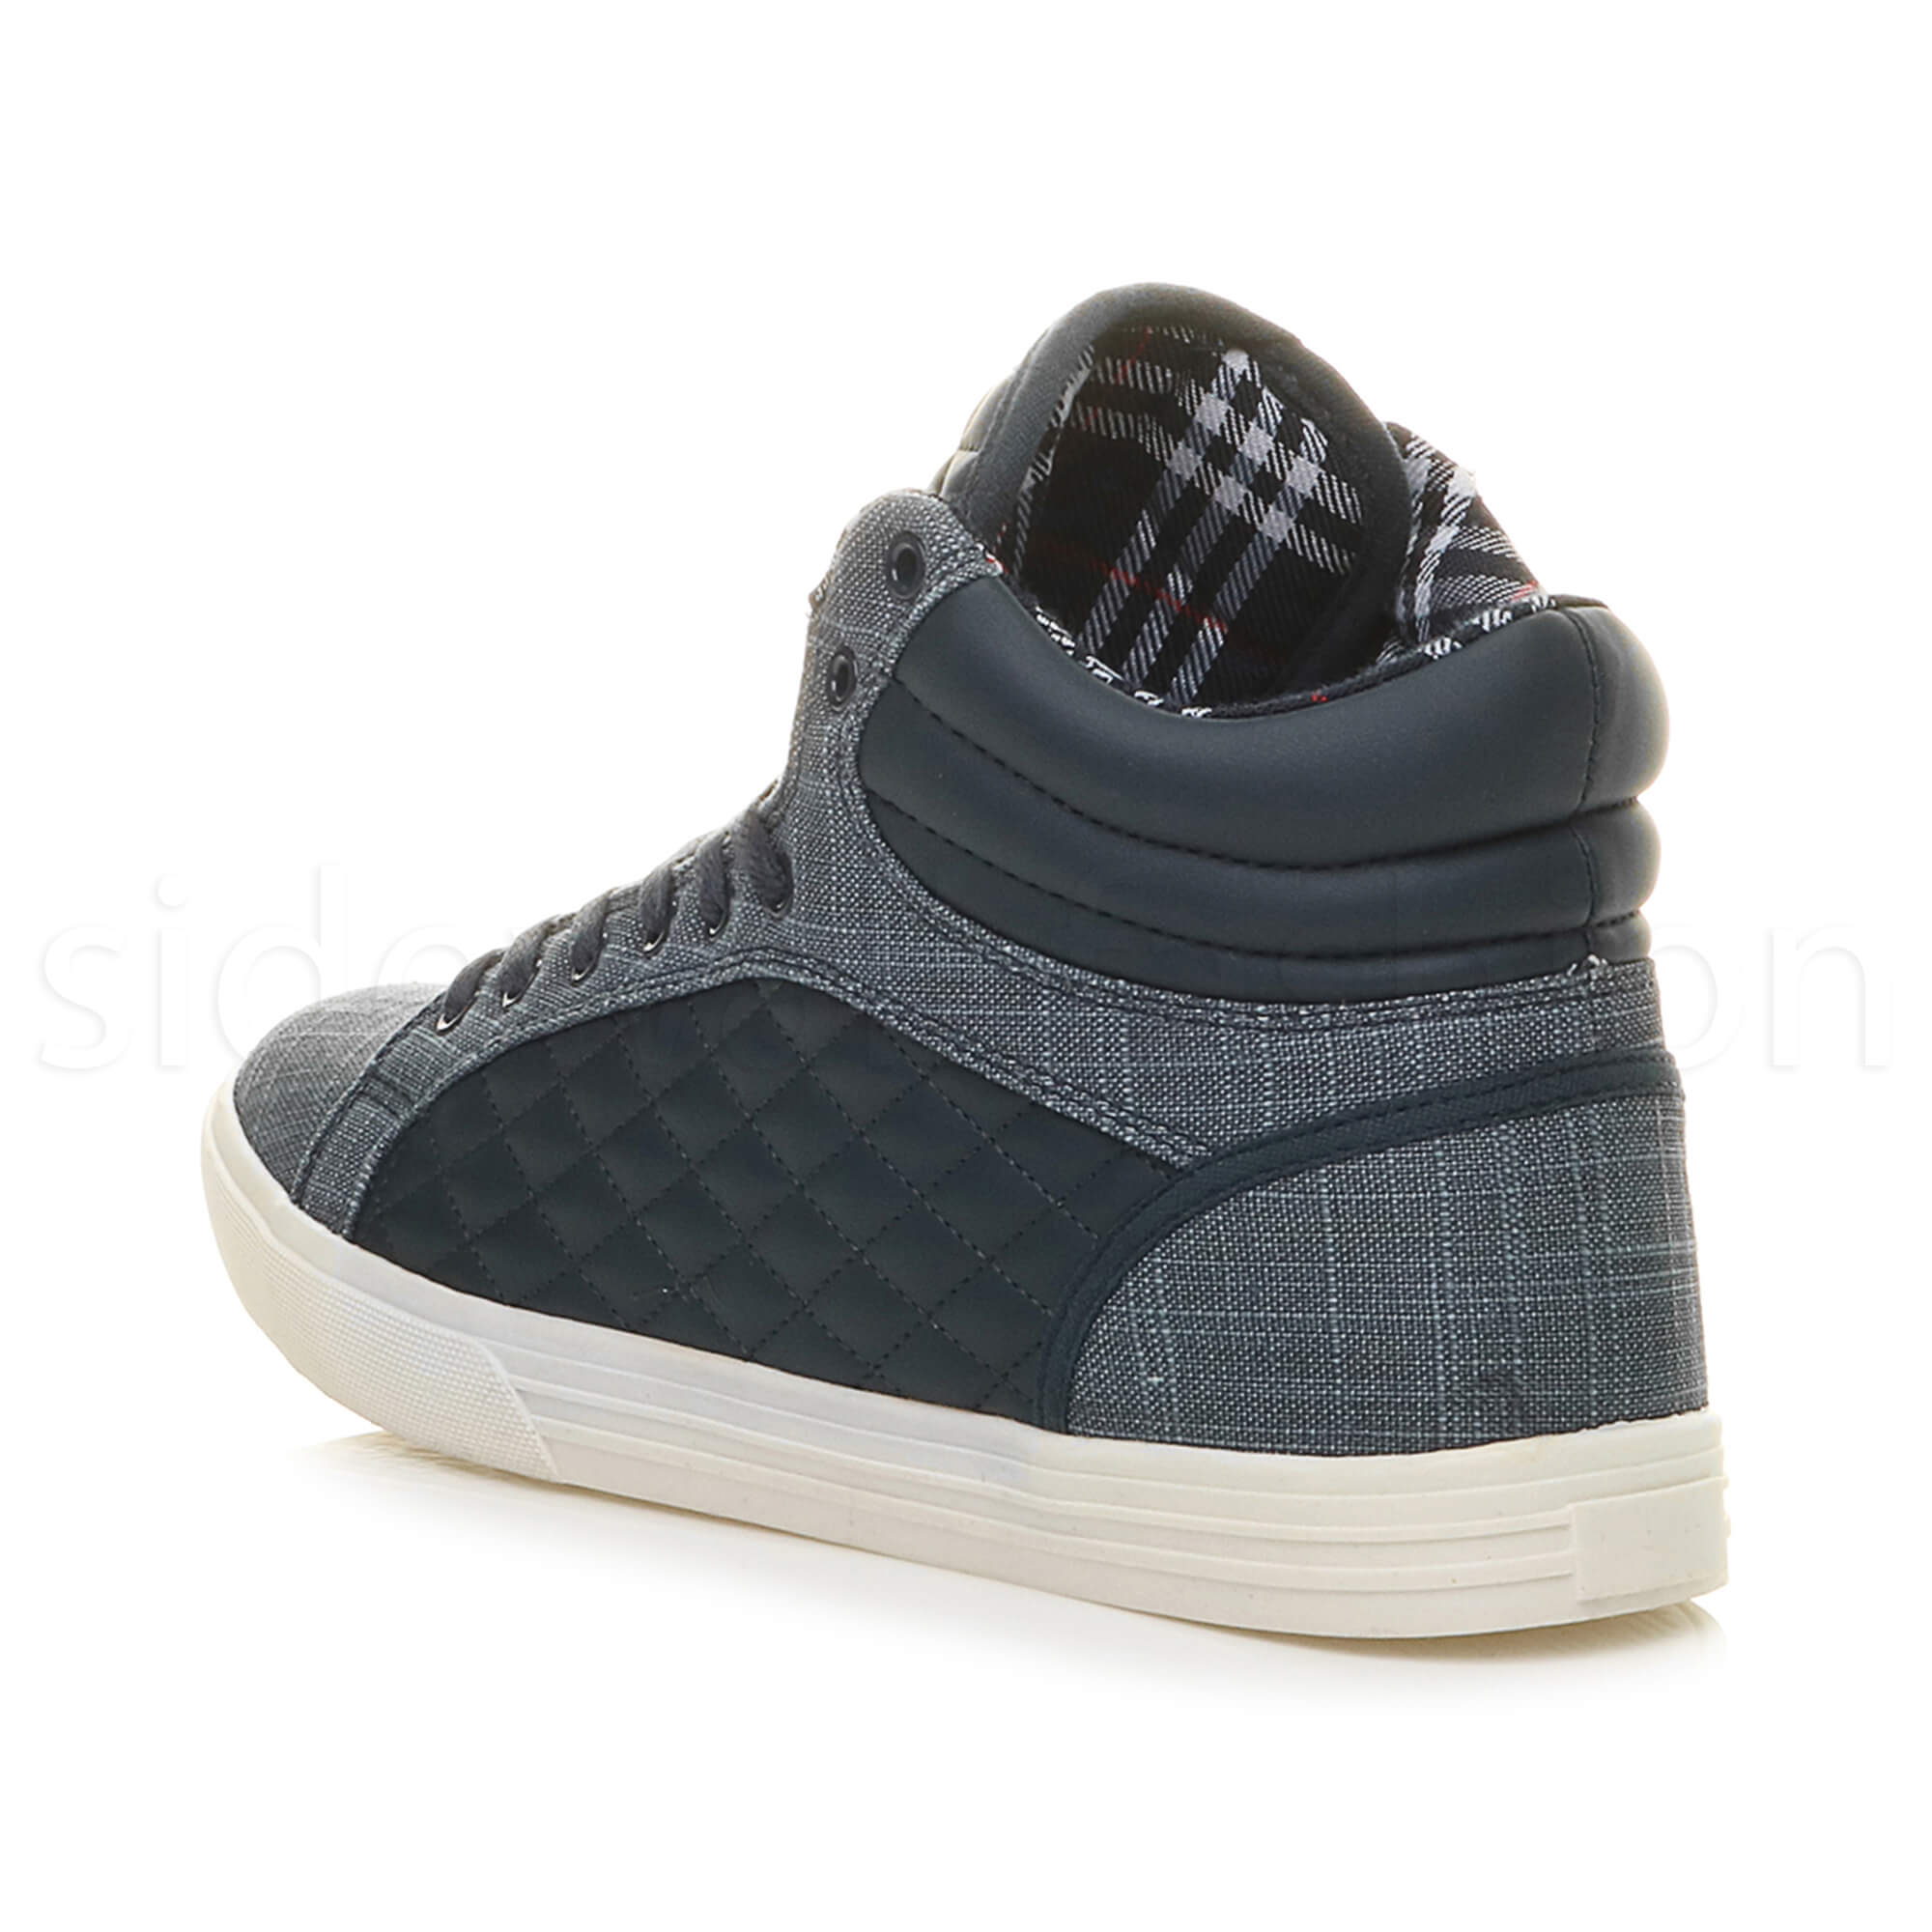 Mens-flat-lace-up-quilted-casual-hi-high-top-ankle-boots-trainers-sneakers-size thumbnail 26